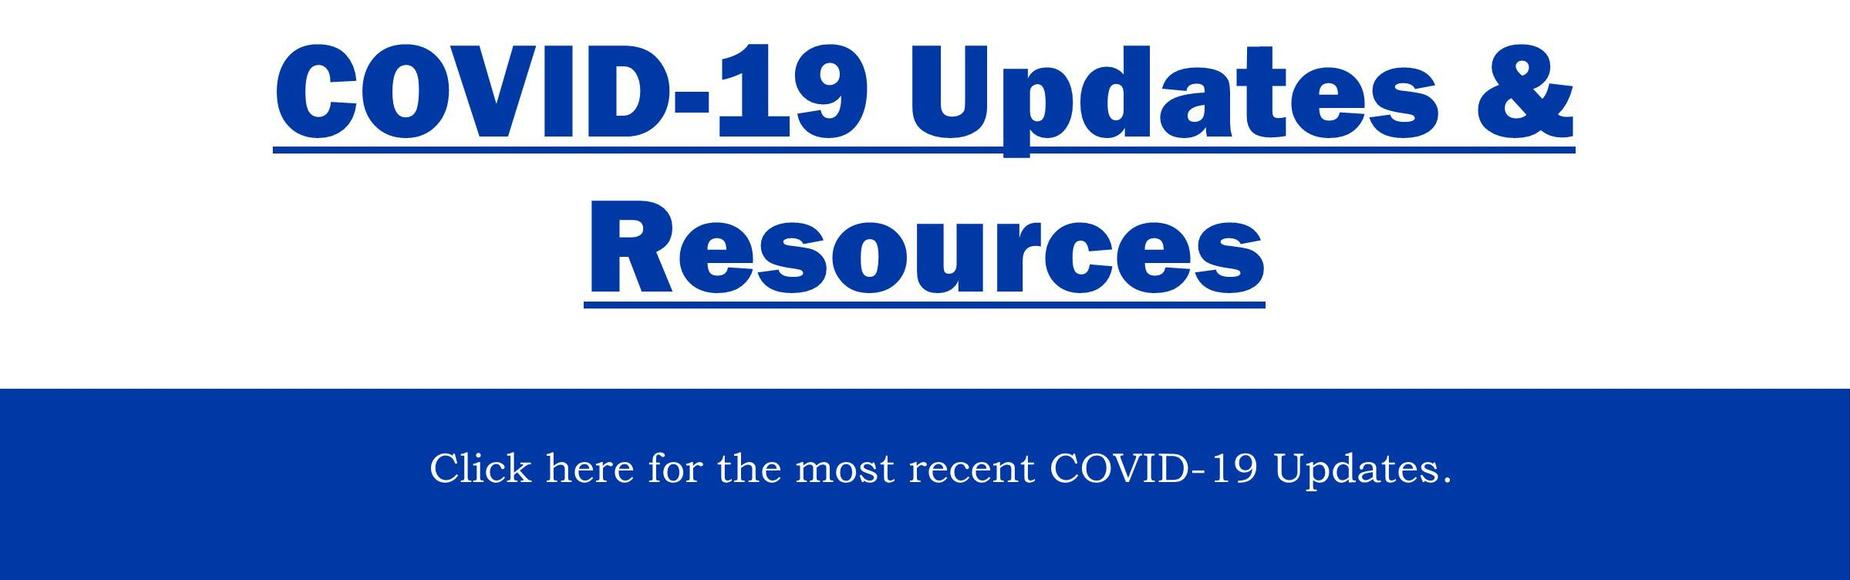 COVID-19 Updates & Resources Banner